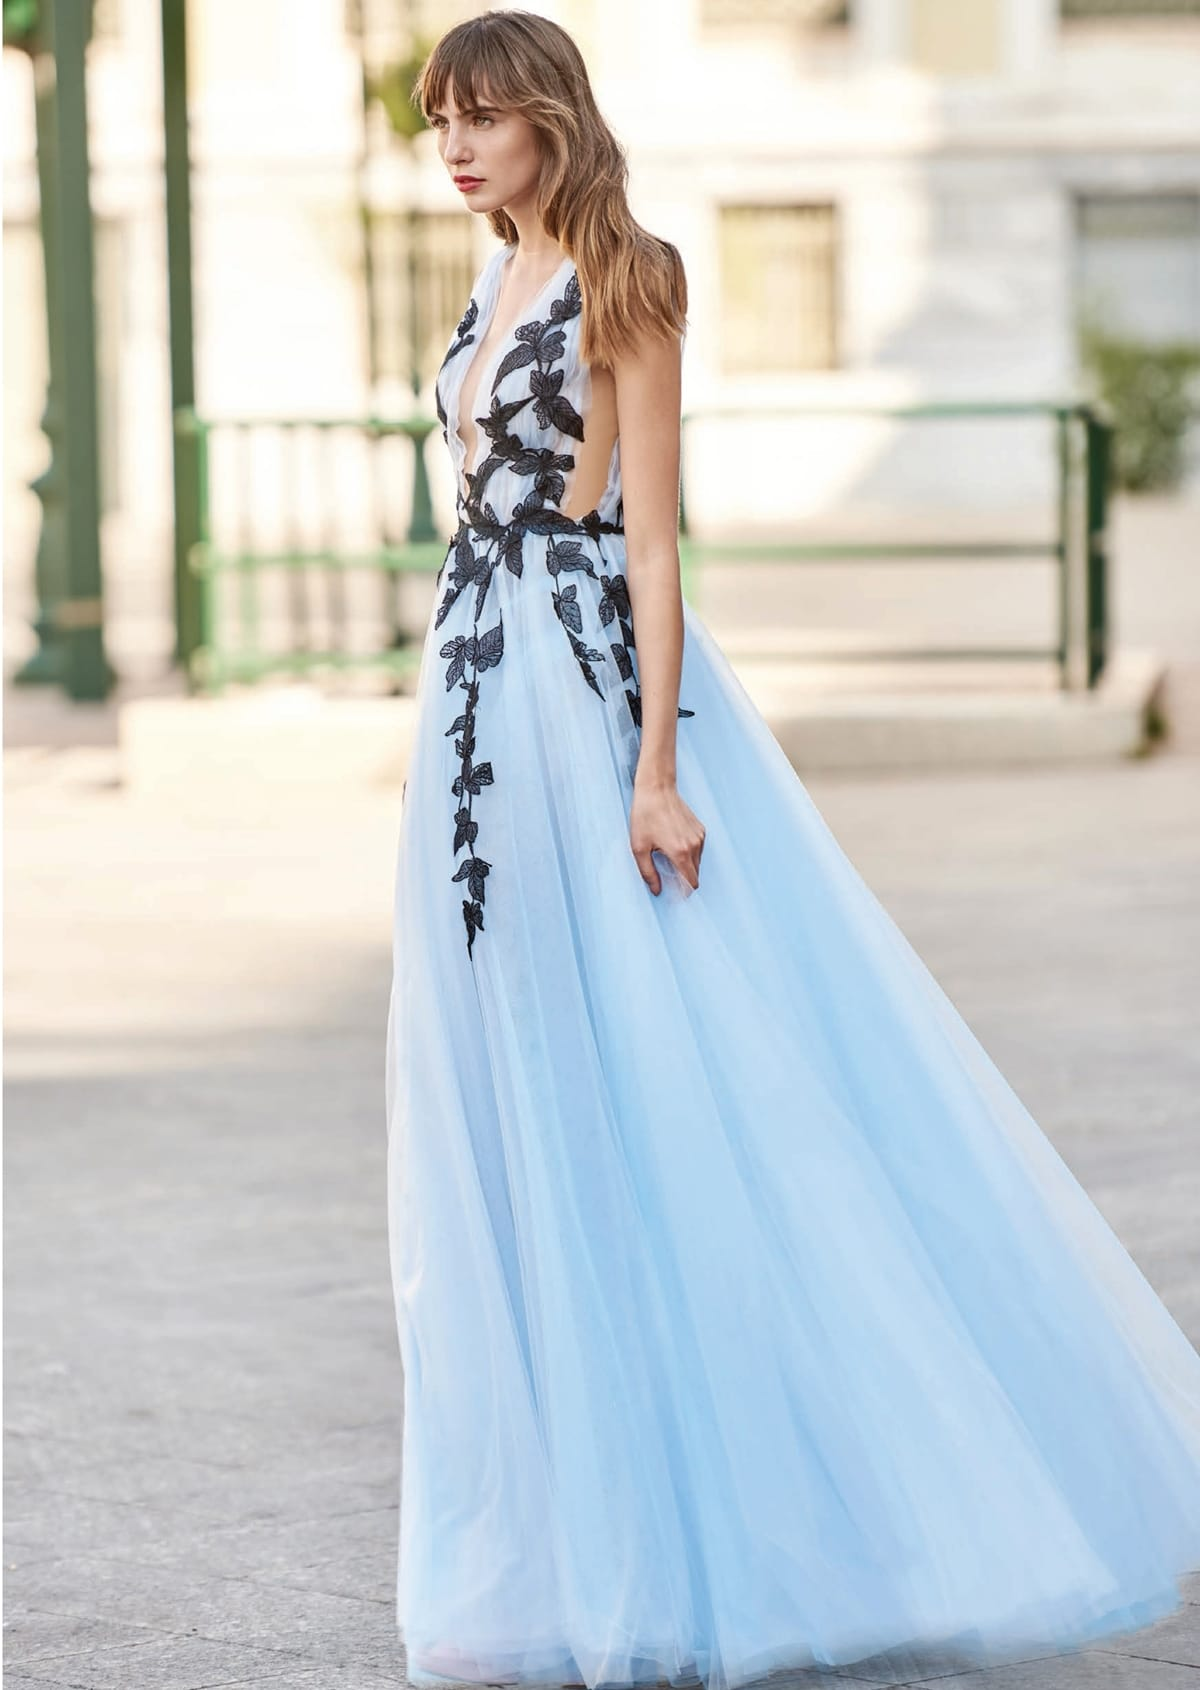 Long ethereal light blue dress with tulle skirt and black embroideries Christos Costarellos